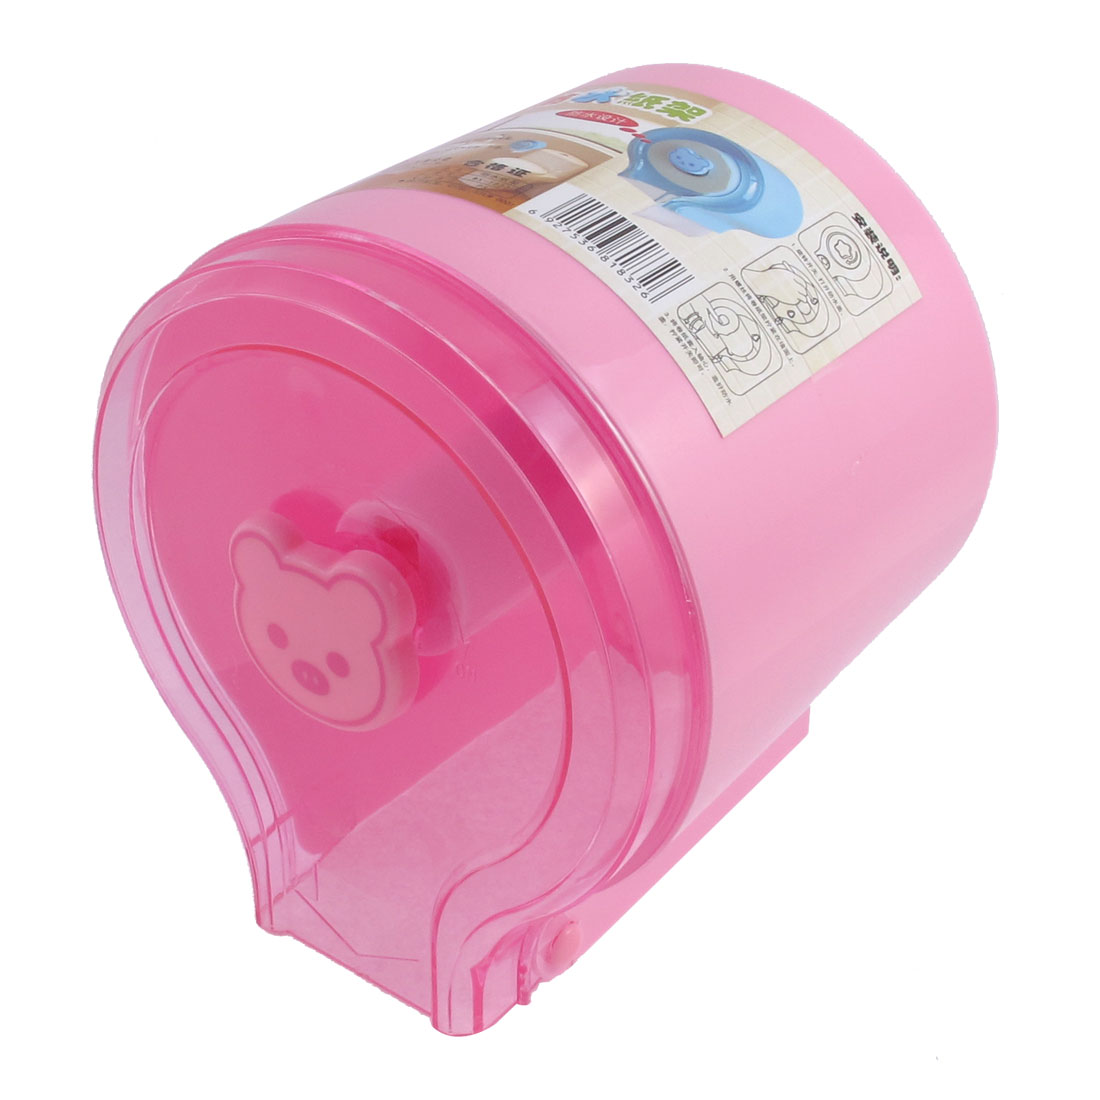 Home Toilet Bear Shaped Lock Clear Pink Plastic Wall Mounted Tissue Box Paper Cover Holder Case